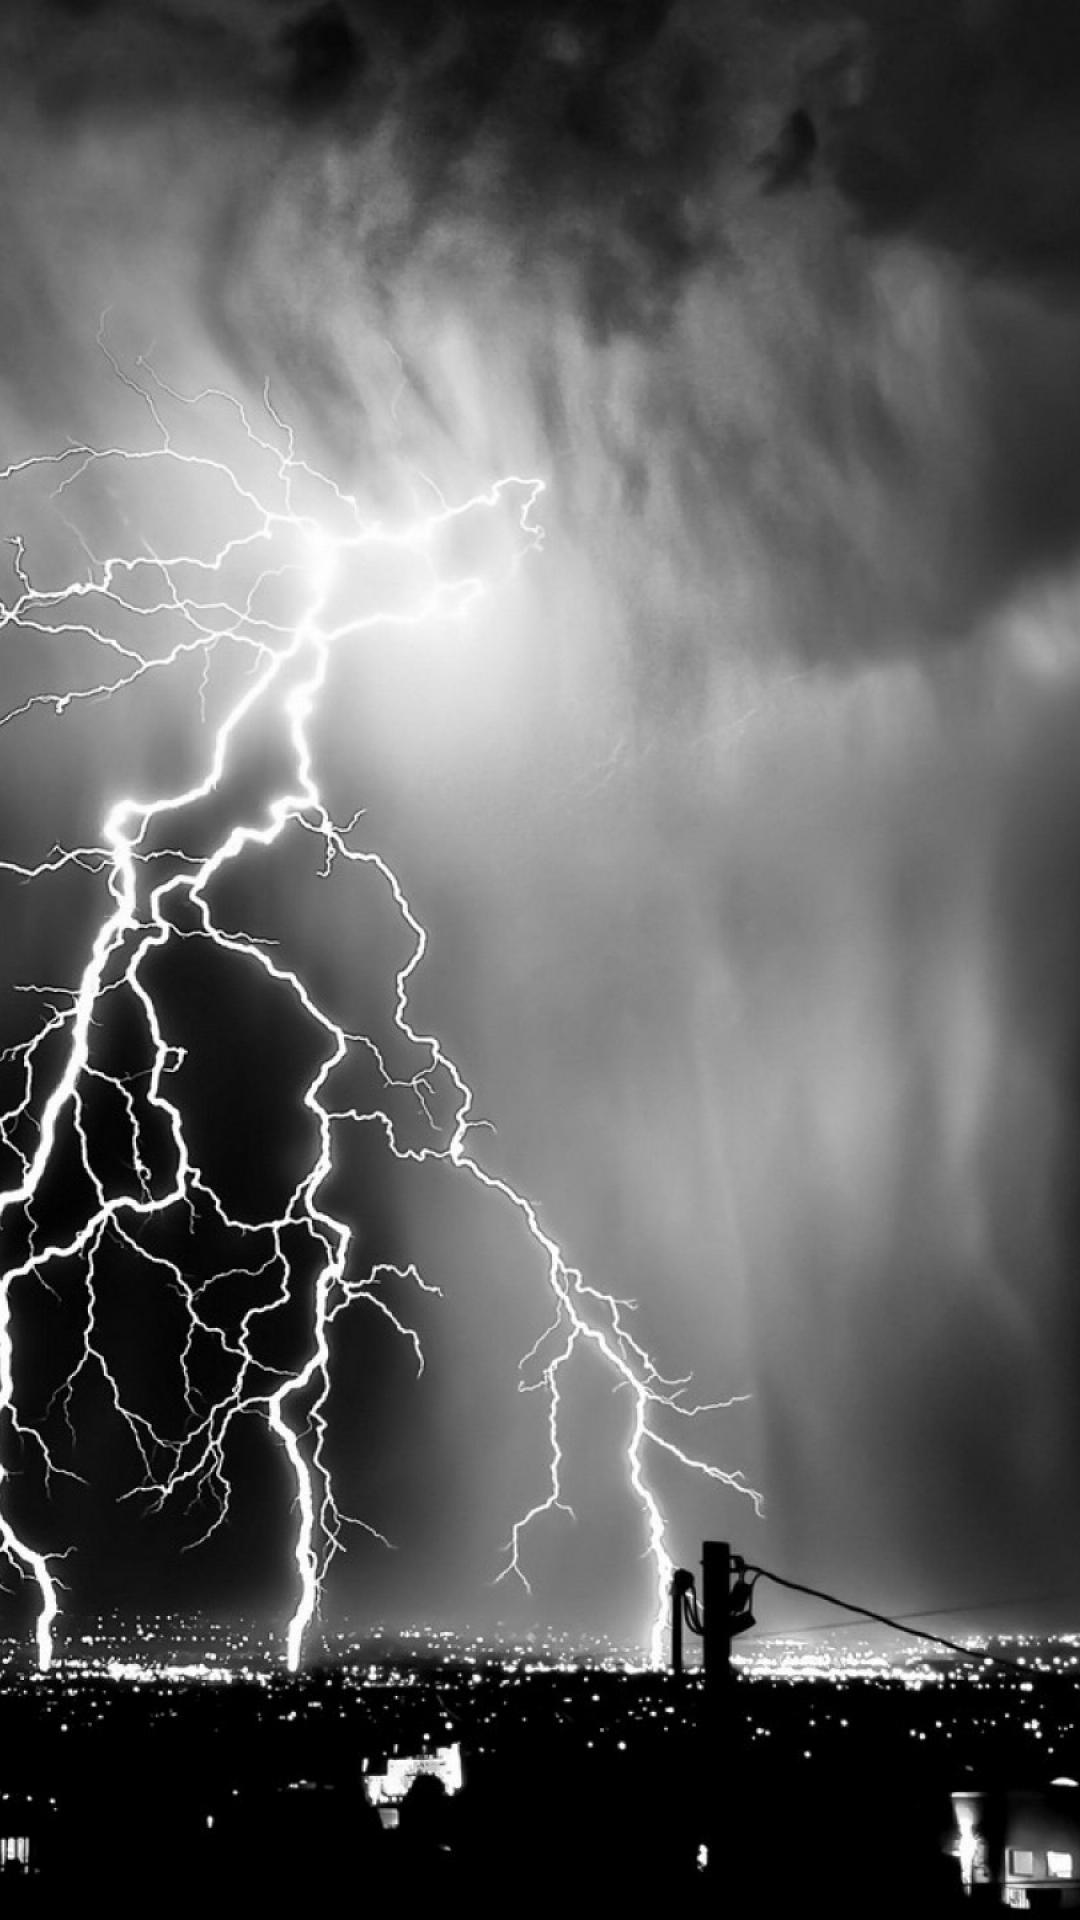 Wallpaper Iphone Pastel Download Black And White Lightning Wallpaper Gallery